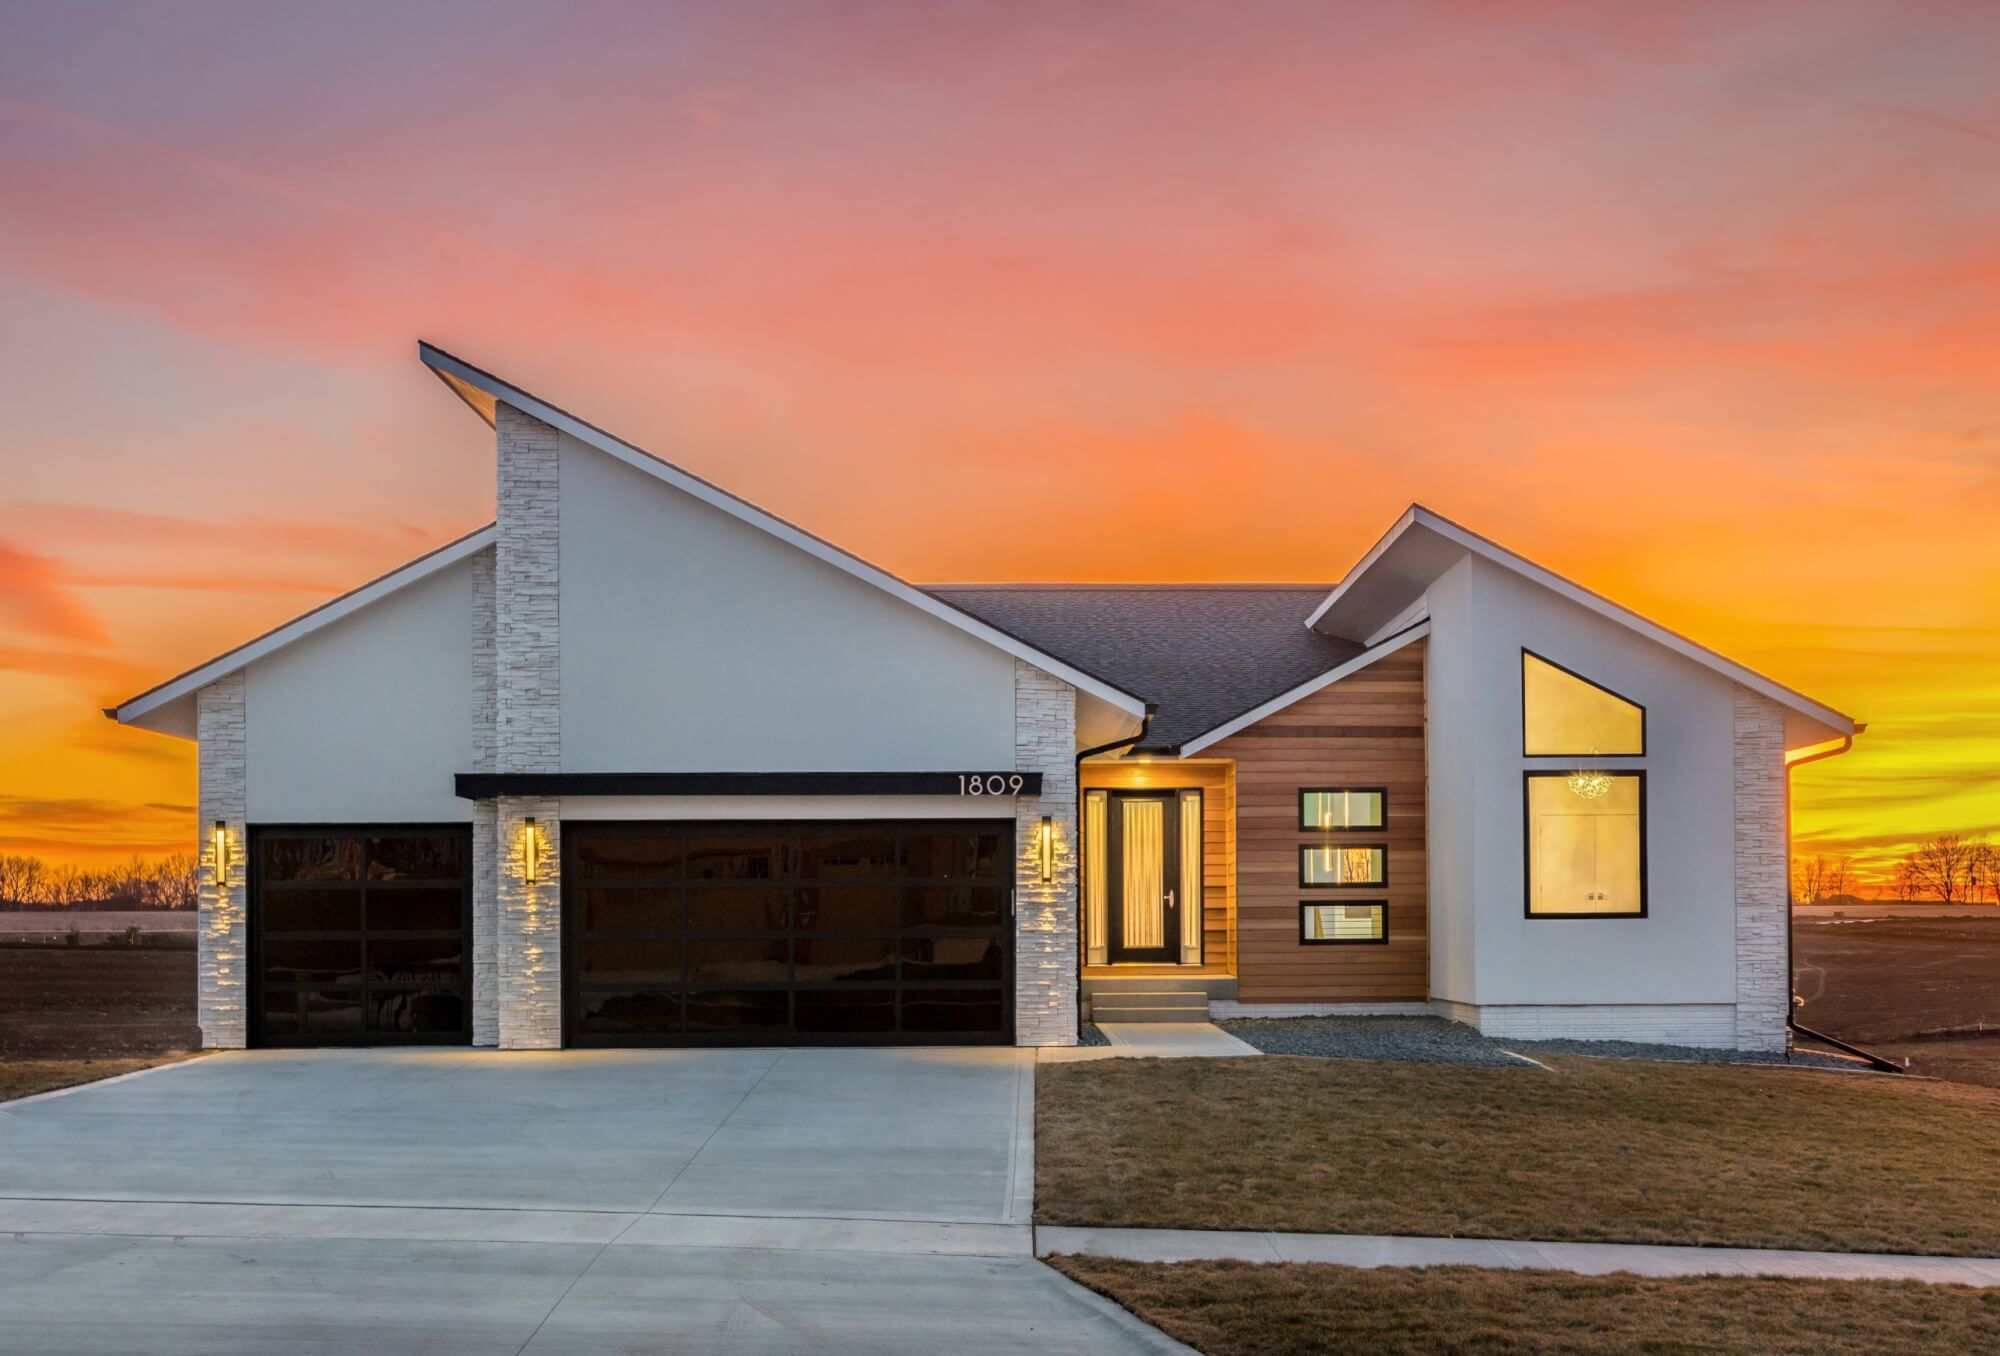 Modern-style custom-built home by Kruse Development with a white and wooden exterior, along with a sunset in the background.